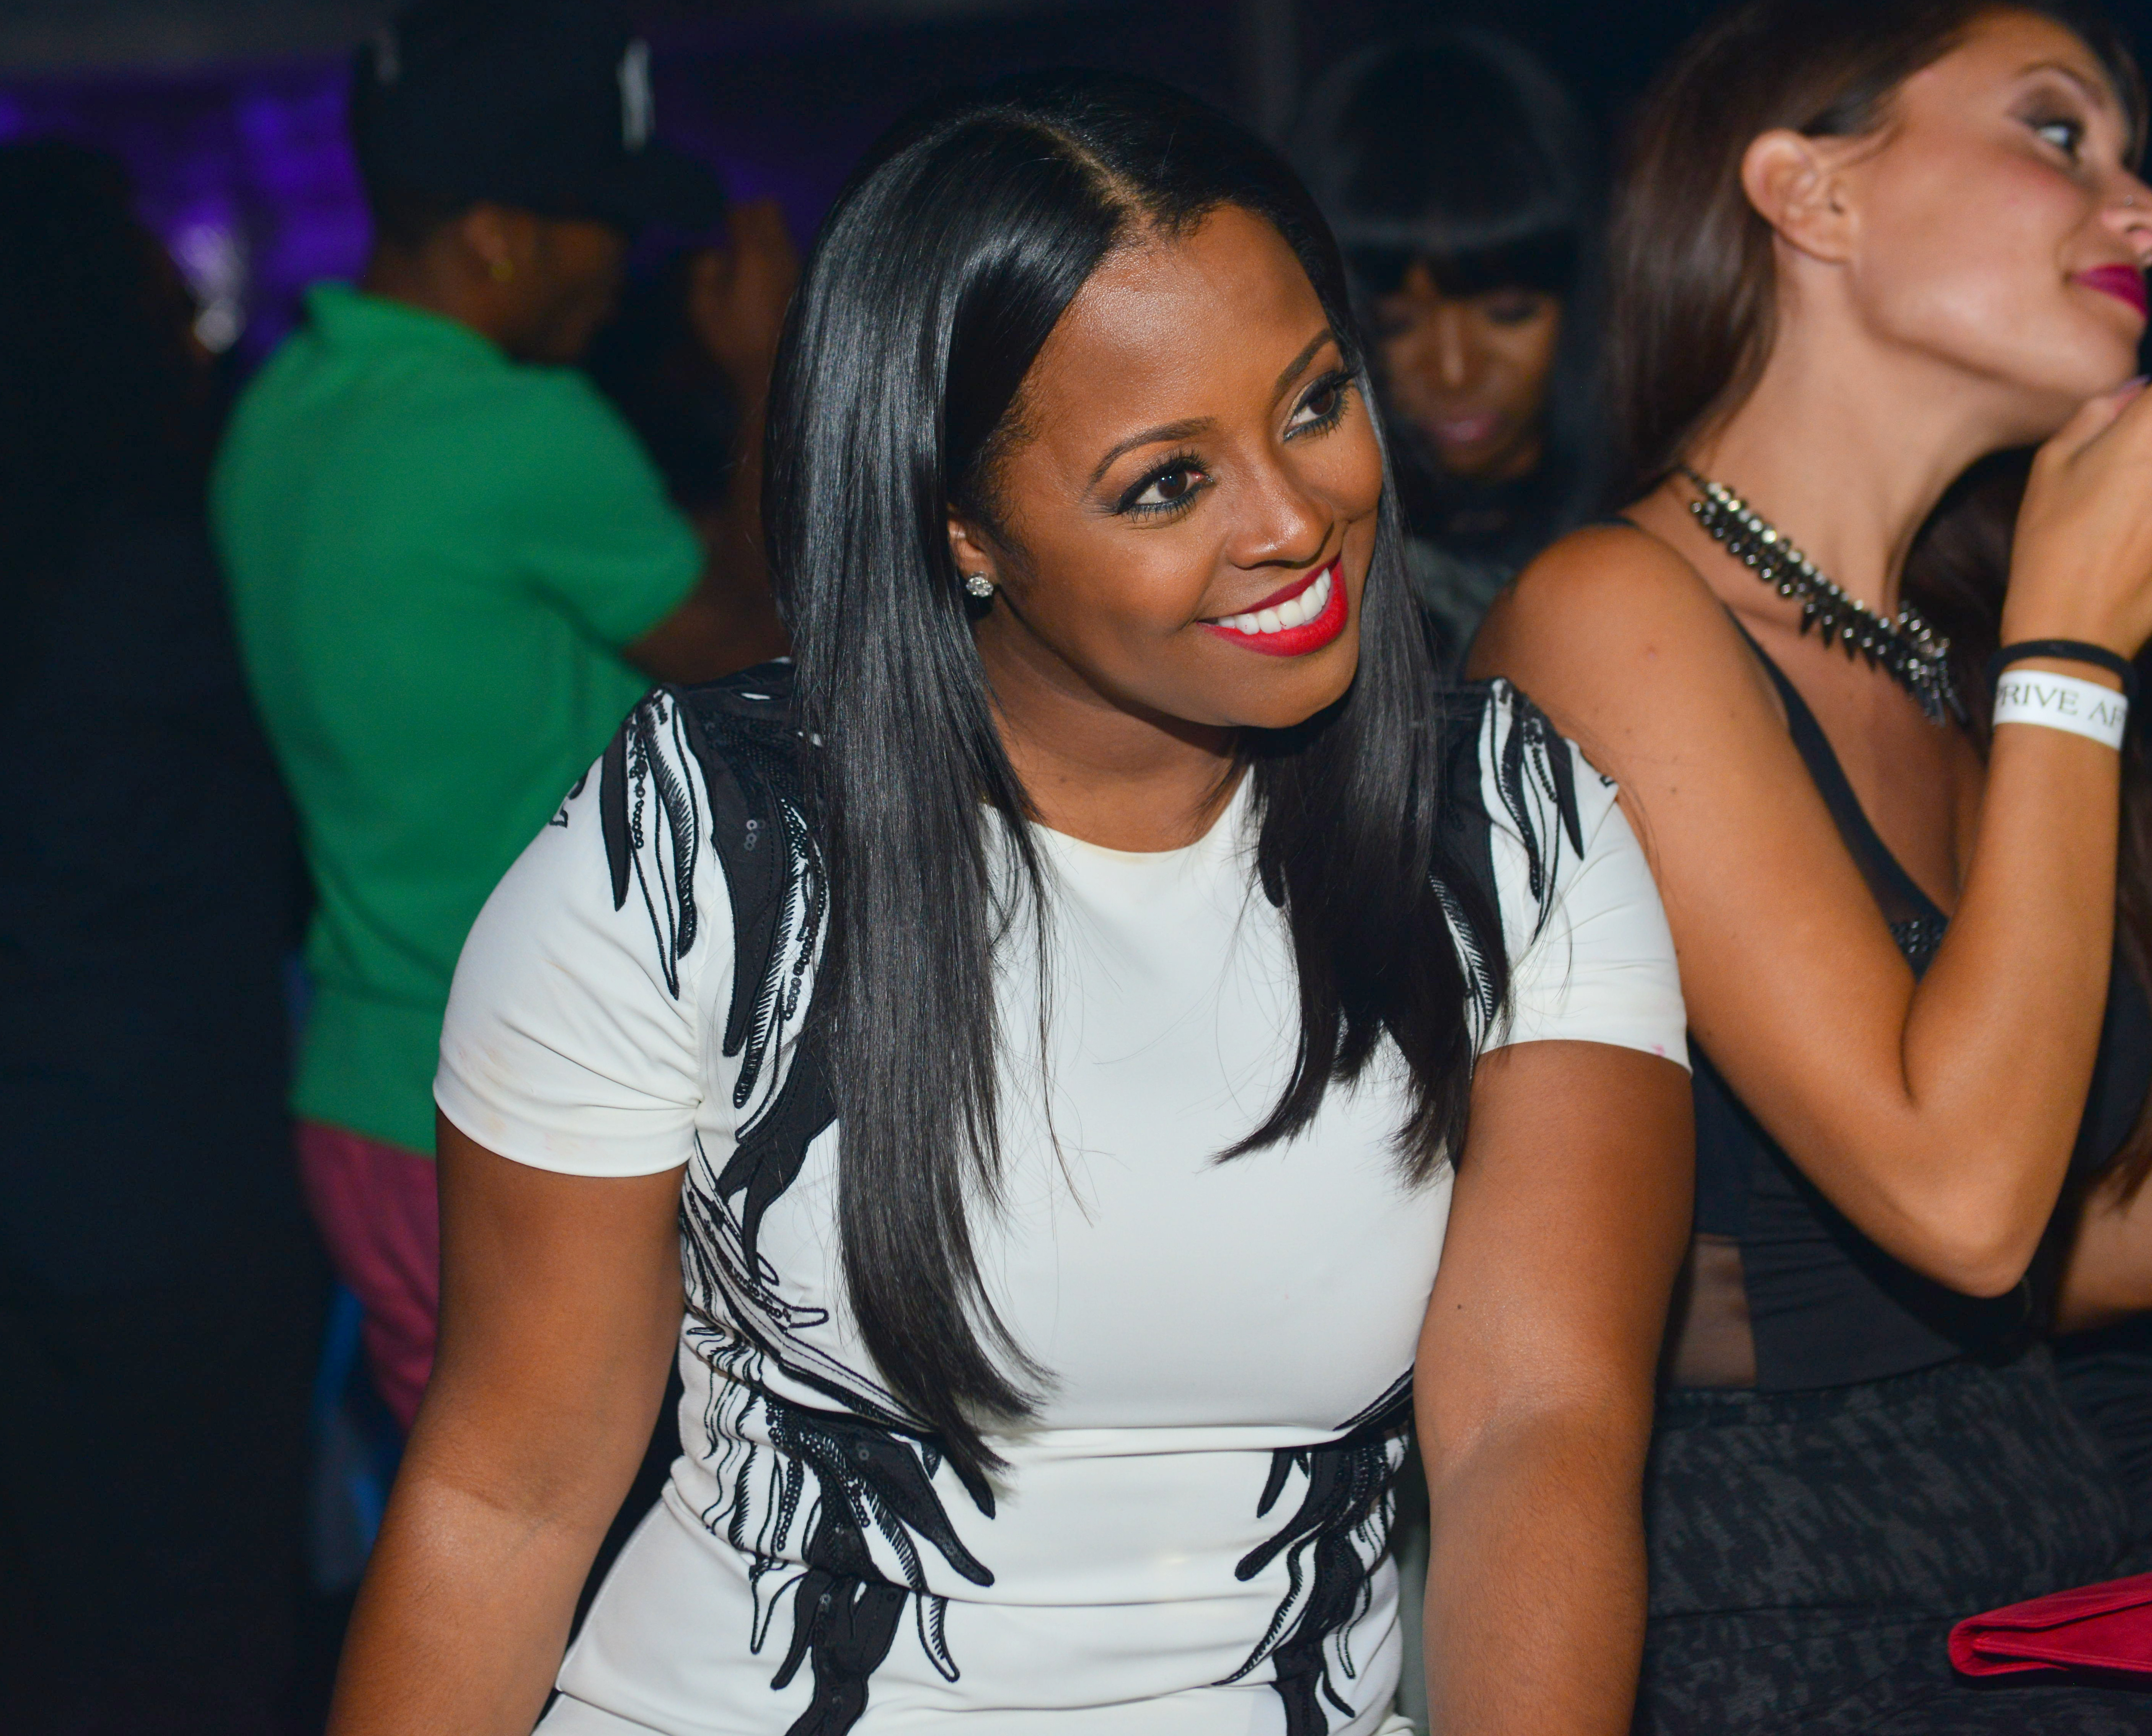 'Black Hollywood' Terrance J., Angela Simmons, Angela Yee, & Tahiry Jose Host Prive